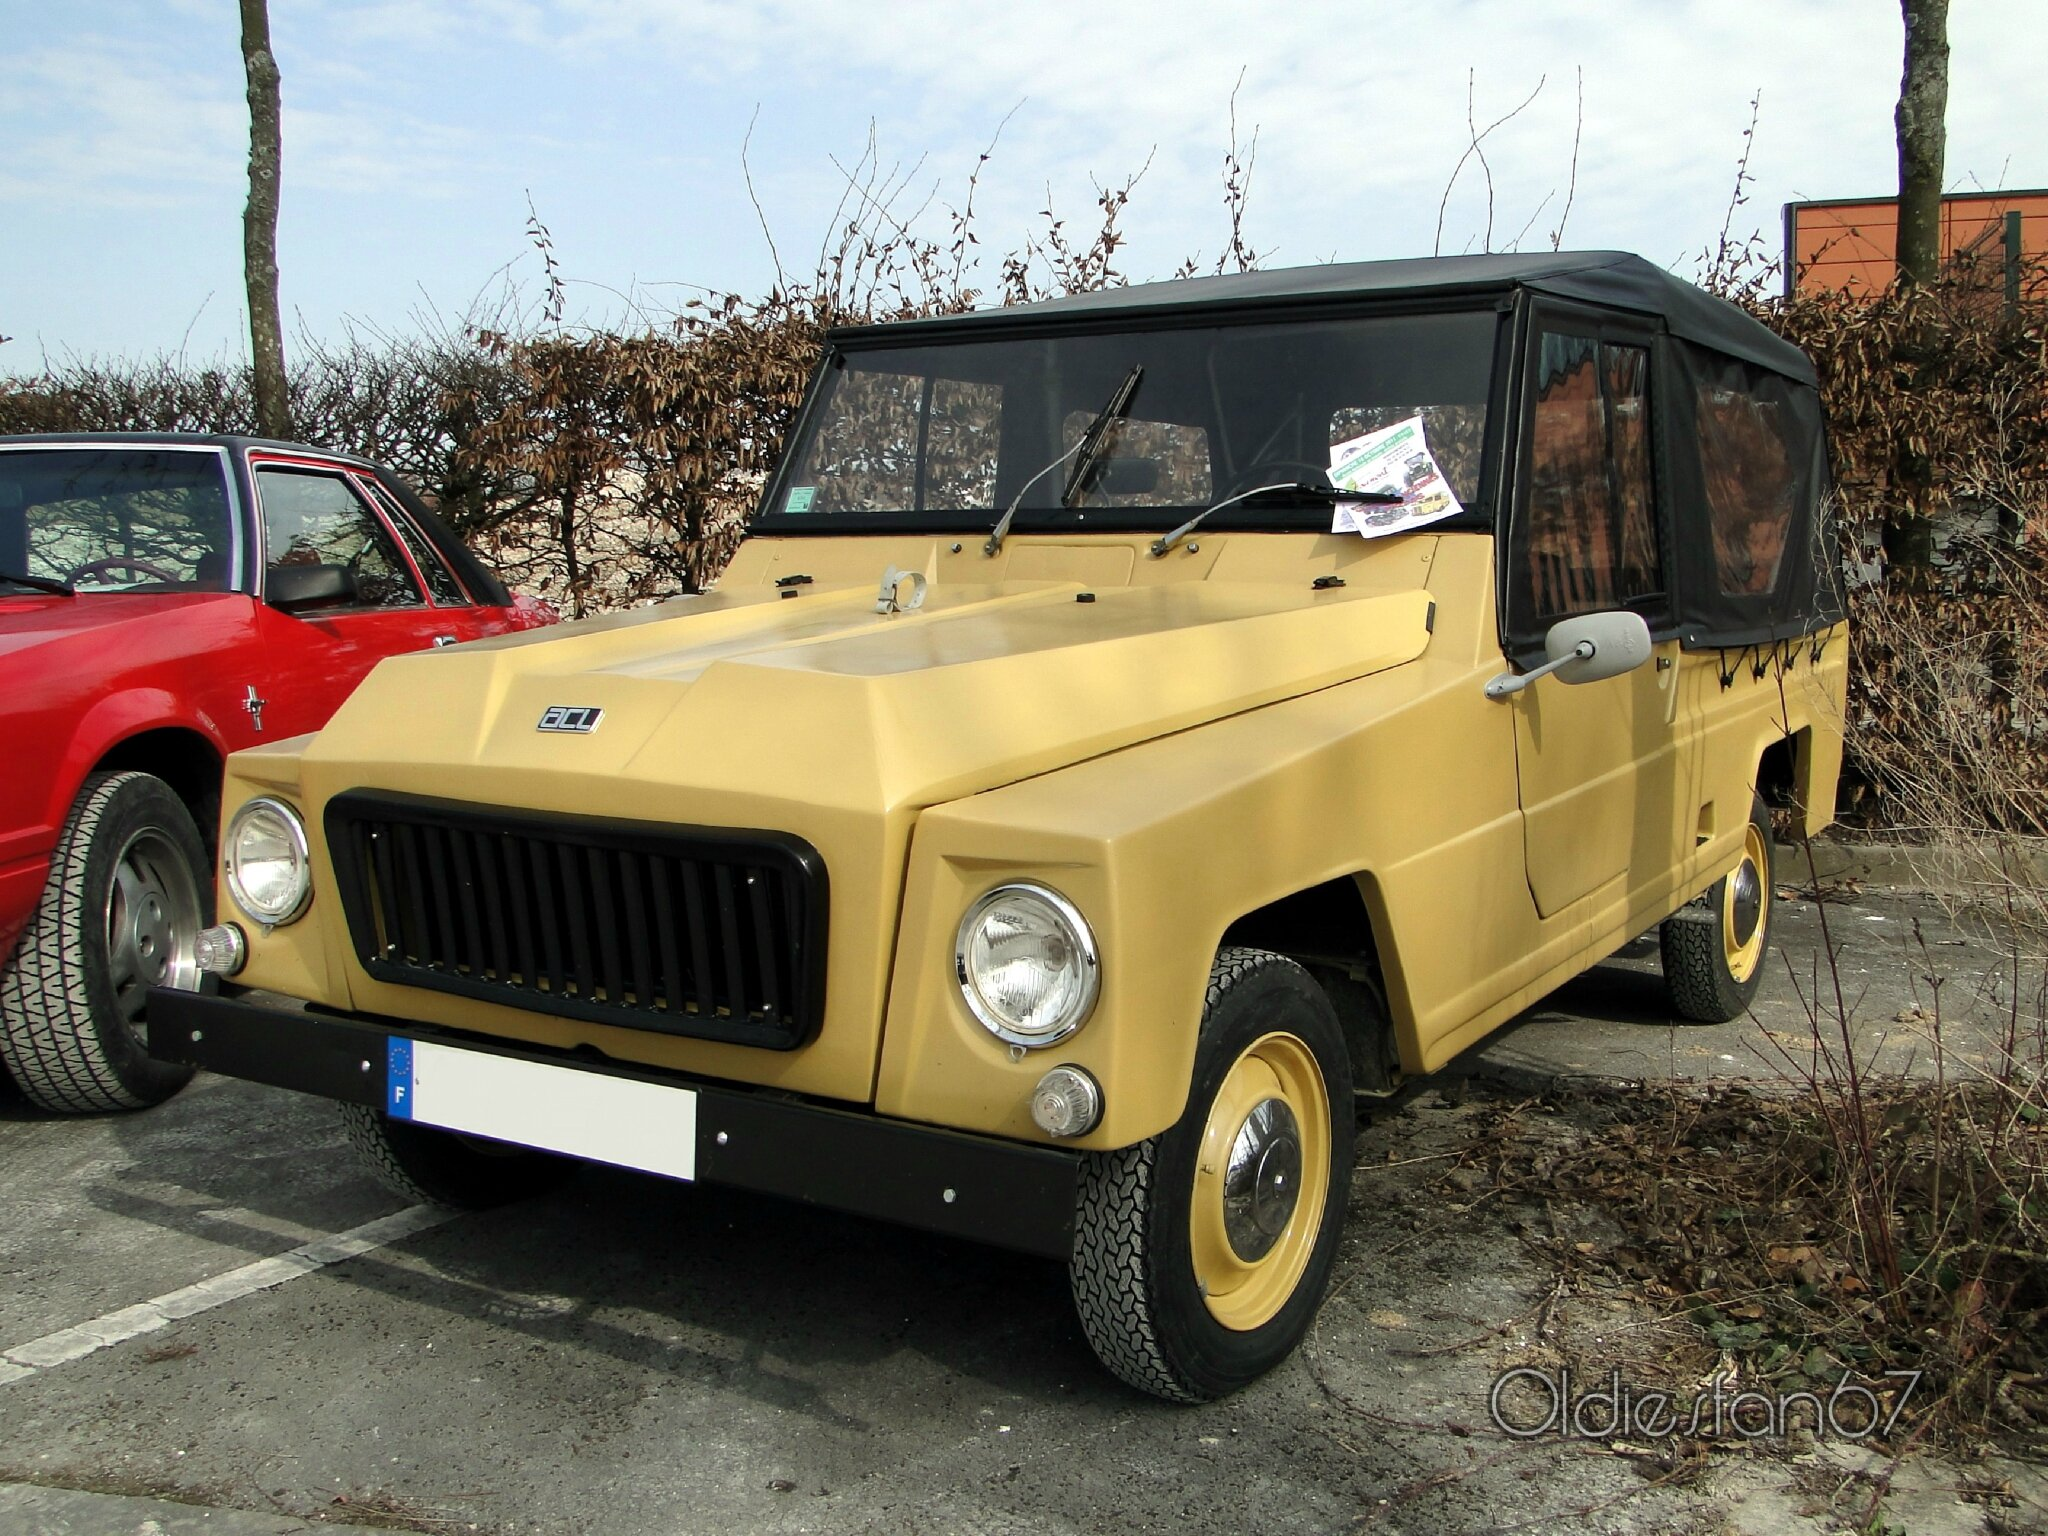 Acl Renault Rodeo 4 1970 1981 Oldiesfan67 Quot Mon Blog Auto Quot